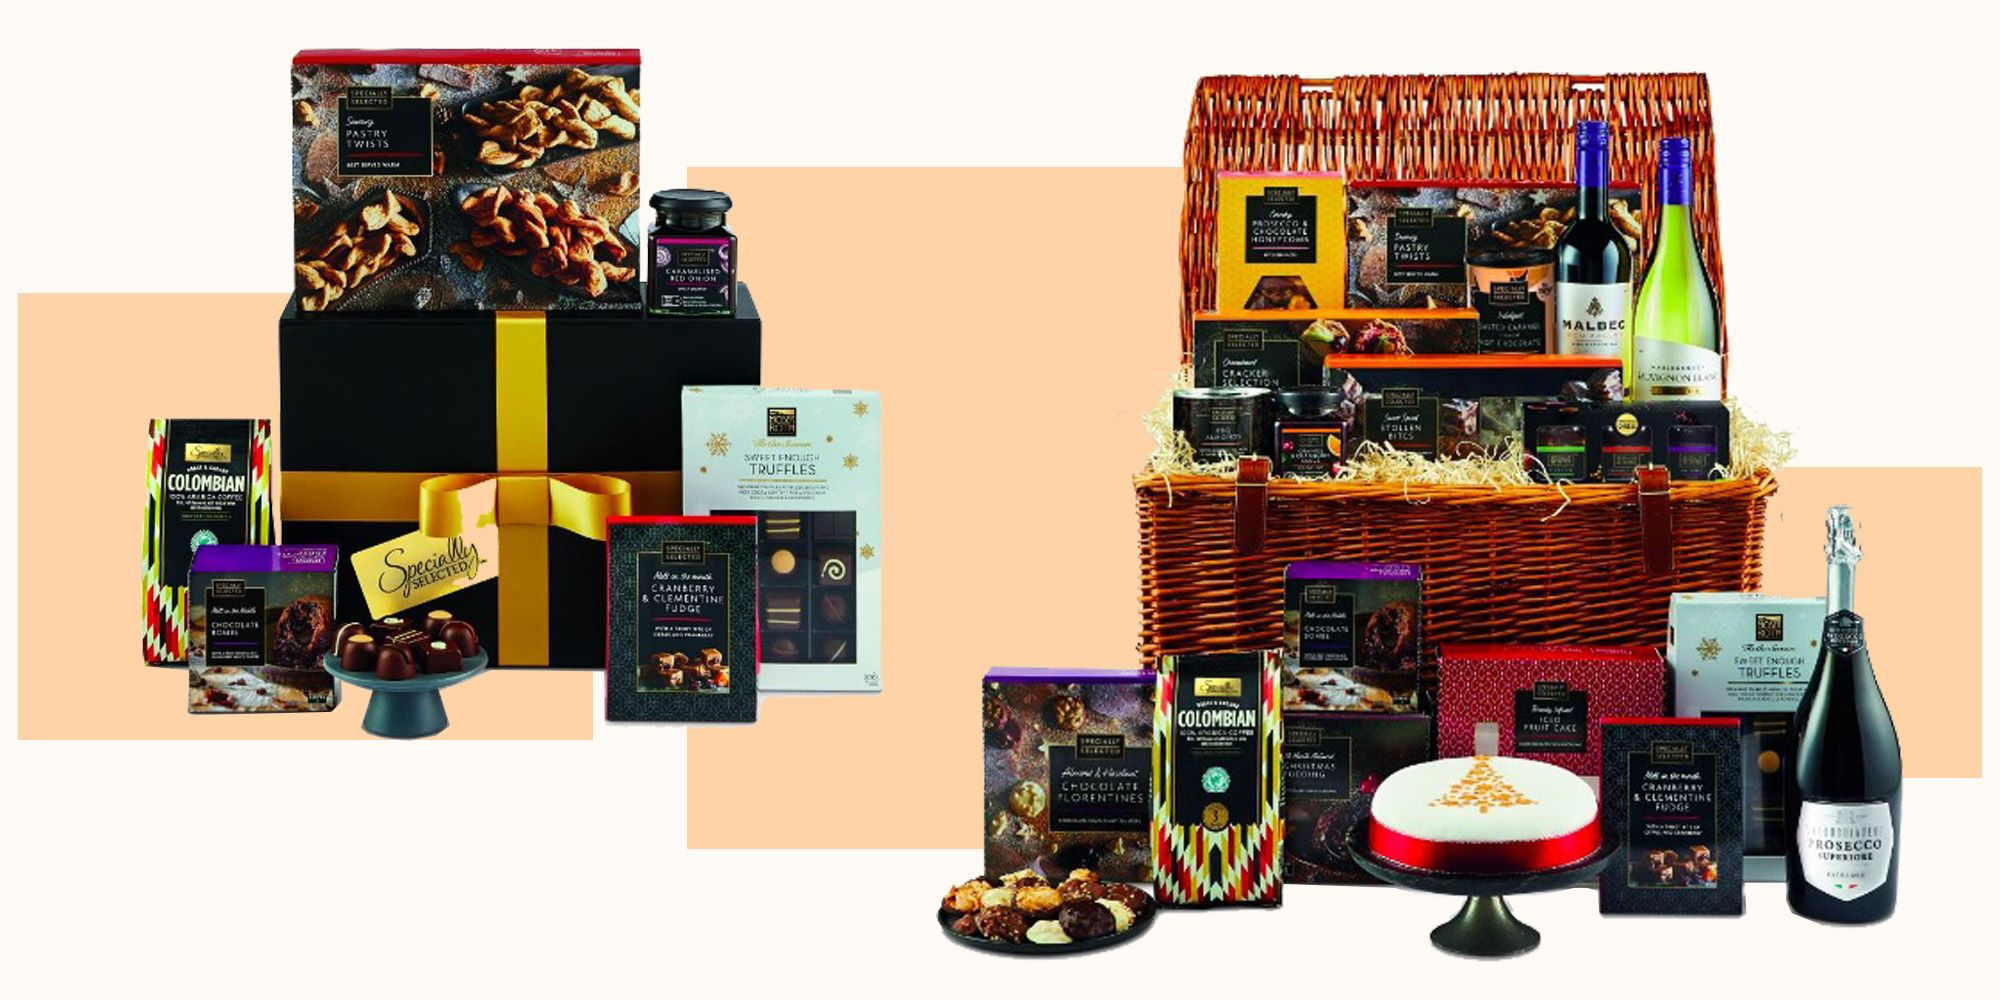 Aldi's Christmas Hampers are back and they're an absolute bargain